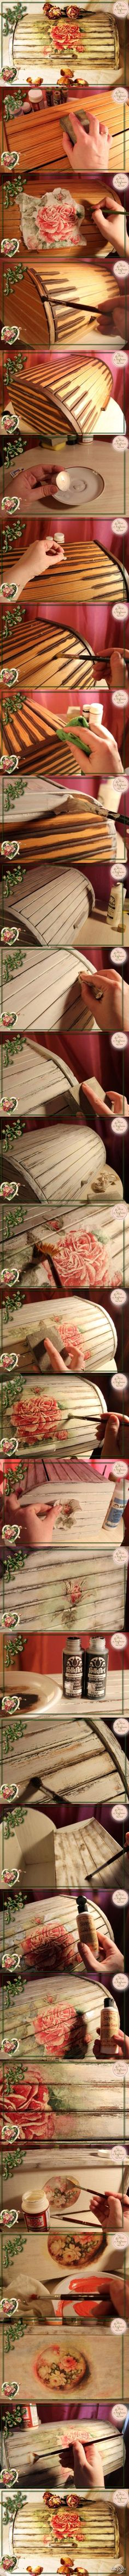 decoupage art craft handmade home decor DIY do it yourself tutorial Materials and techniques: rice paper napkin varnish mod podge craquelure paint etc. Napkin Decoupage, Decoupage Tutorial, Decoupage Box, Decoupage Vintage, Diy Tutorial, Wood Crafts, Diy And Crafts, Decoupage Furniture, Diy Home Decor Projects